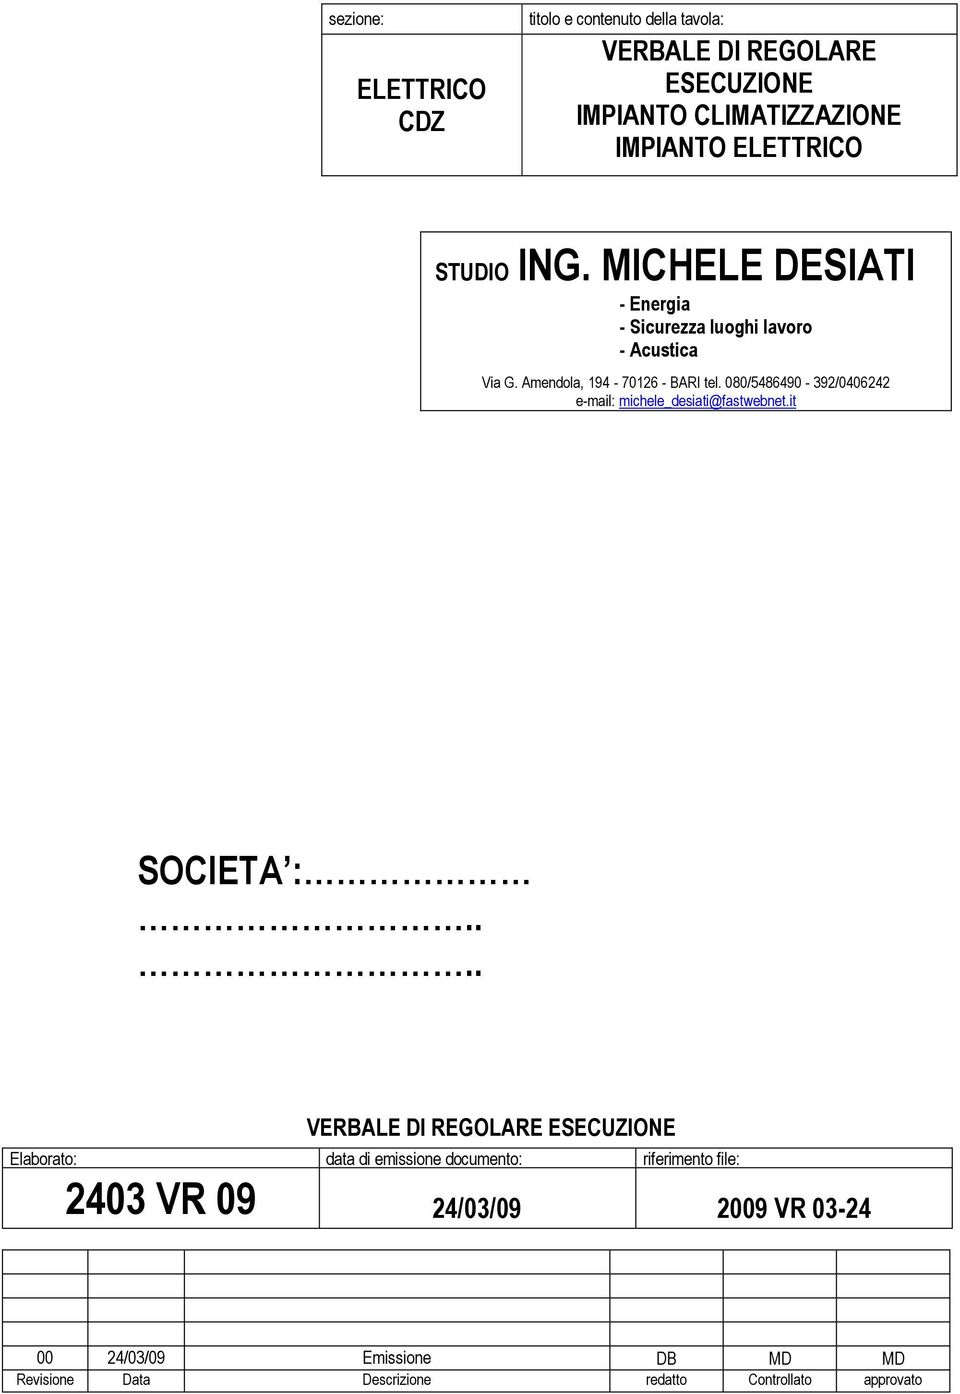 080/5486490-392/0406242 e-mail: michele_desiati@fastwebnet.it SOCIETA :.